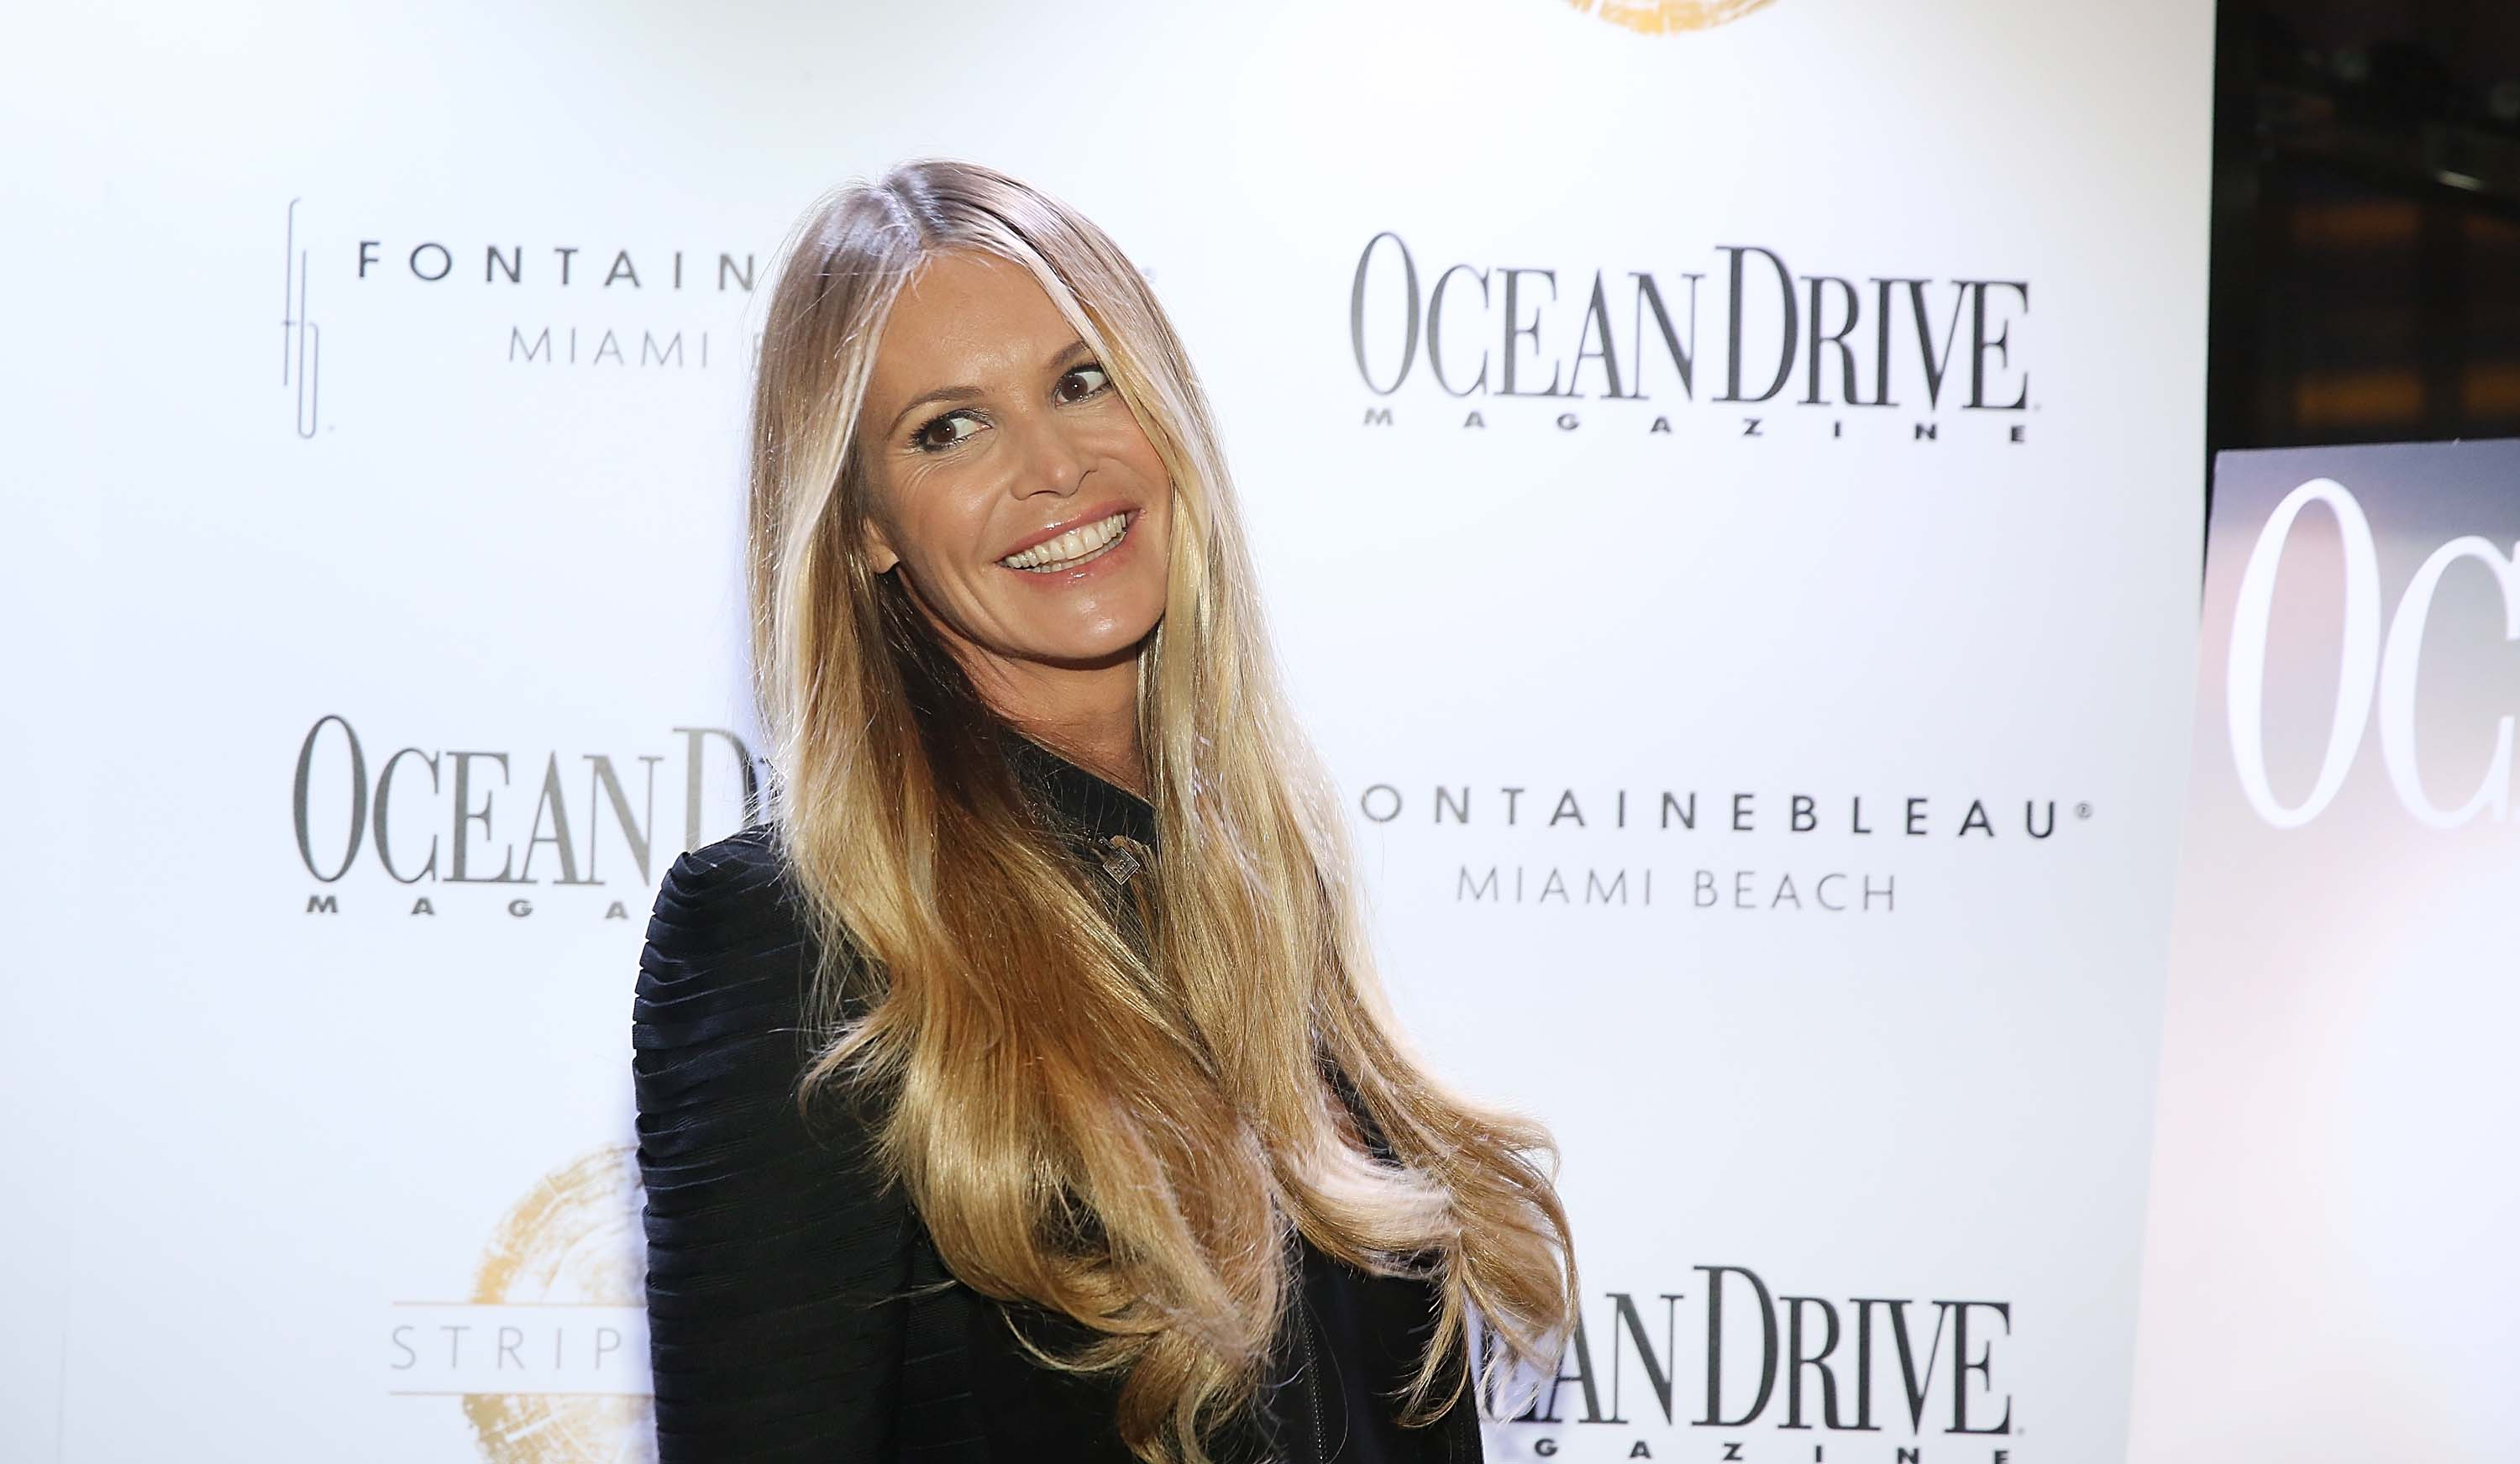 Elle Macpherson has mixed feelings about her Friends cameo (Picture: FilmMagic)